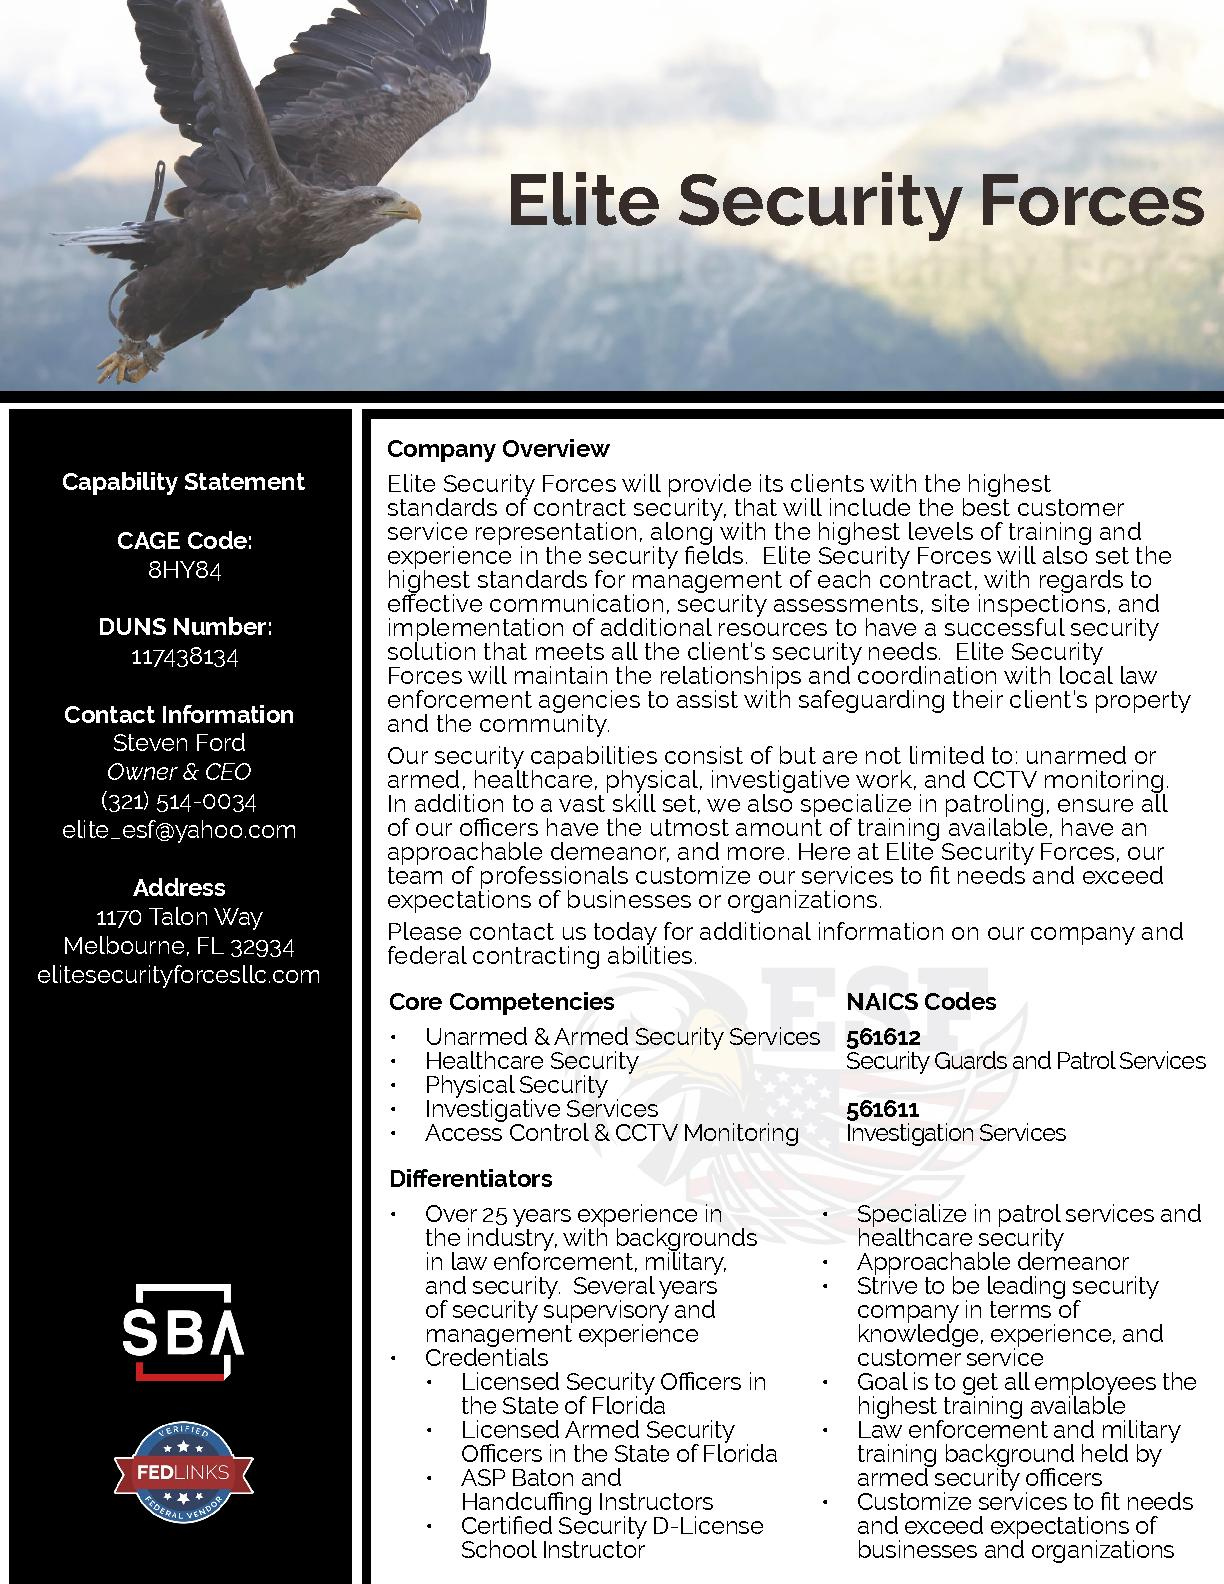 Elite security forces capability statement